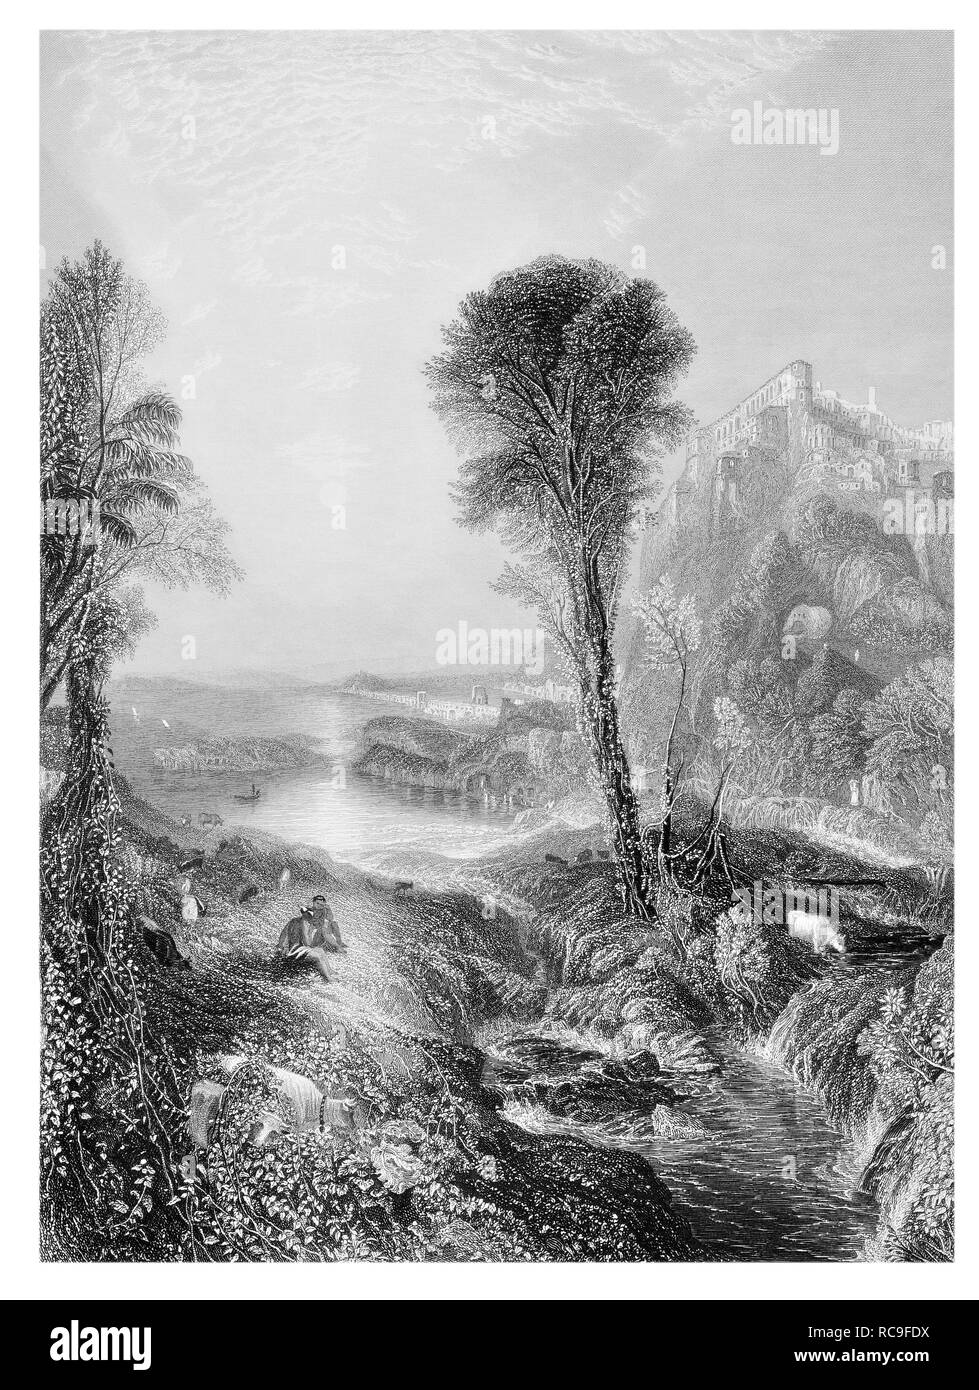 J.M.W Turner Mercury and Argus engraved by J.T. Willmore - Stock Image